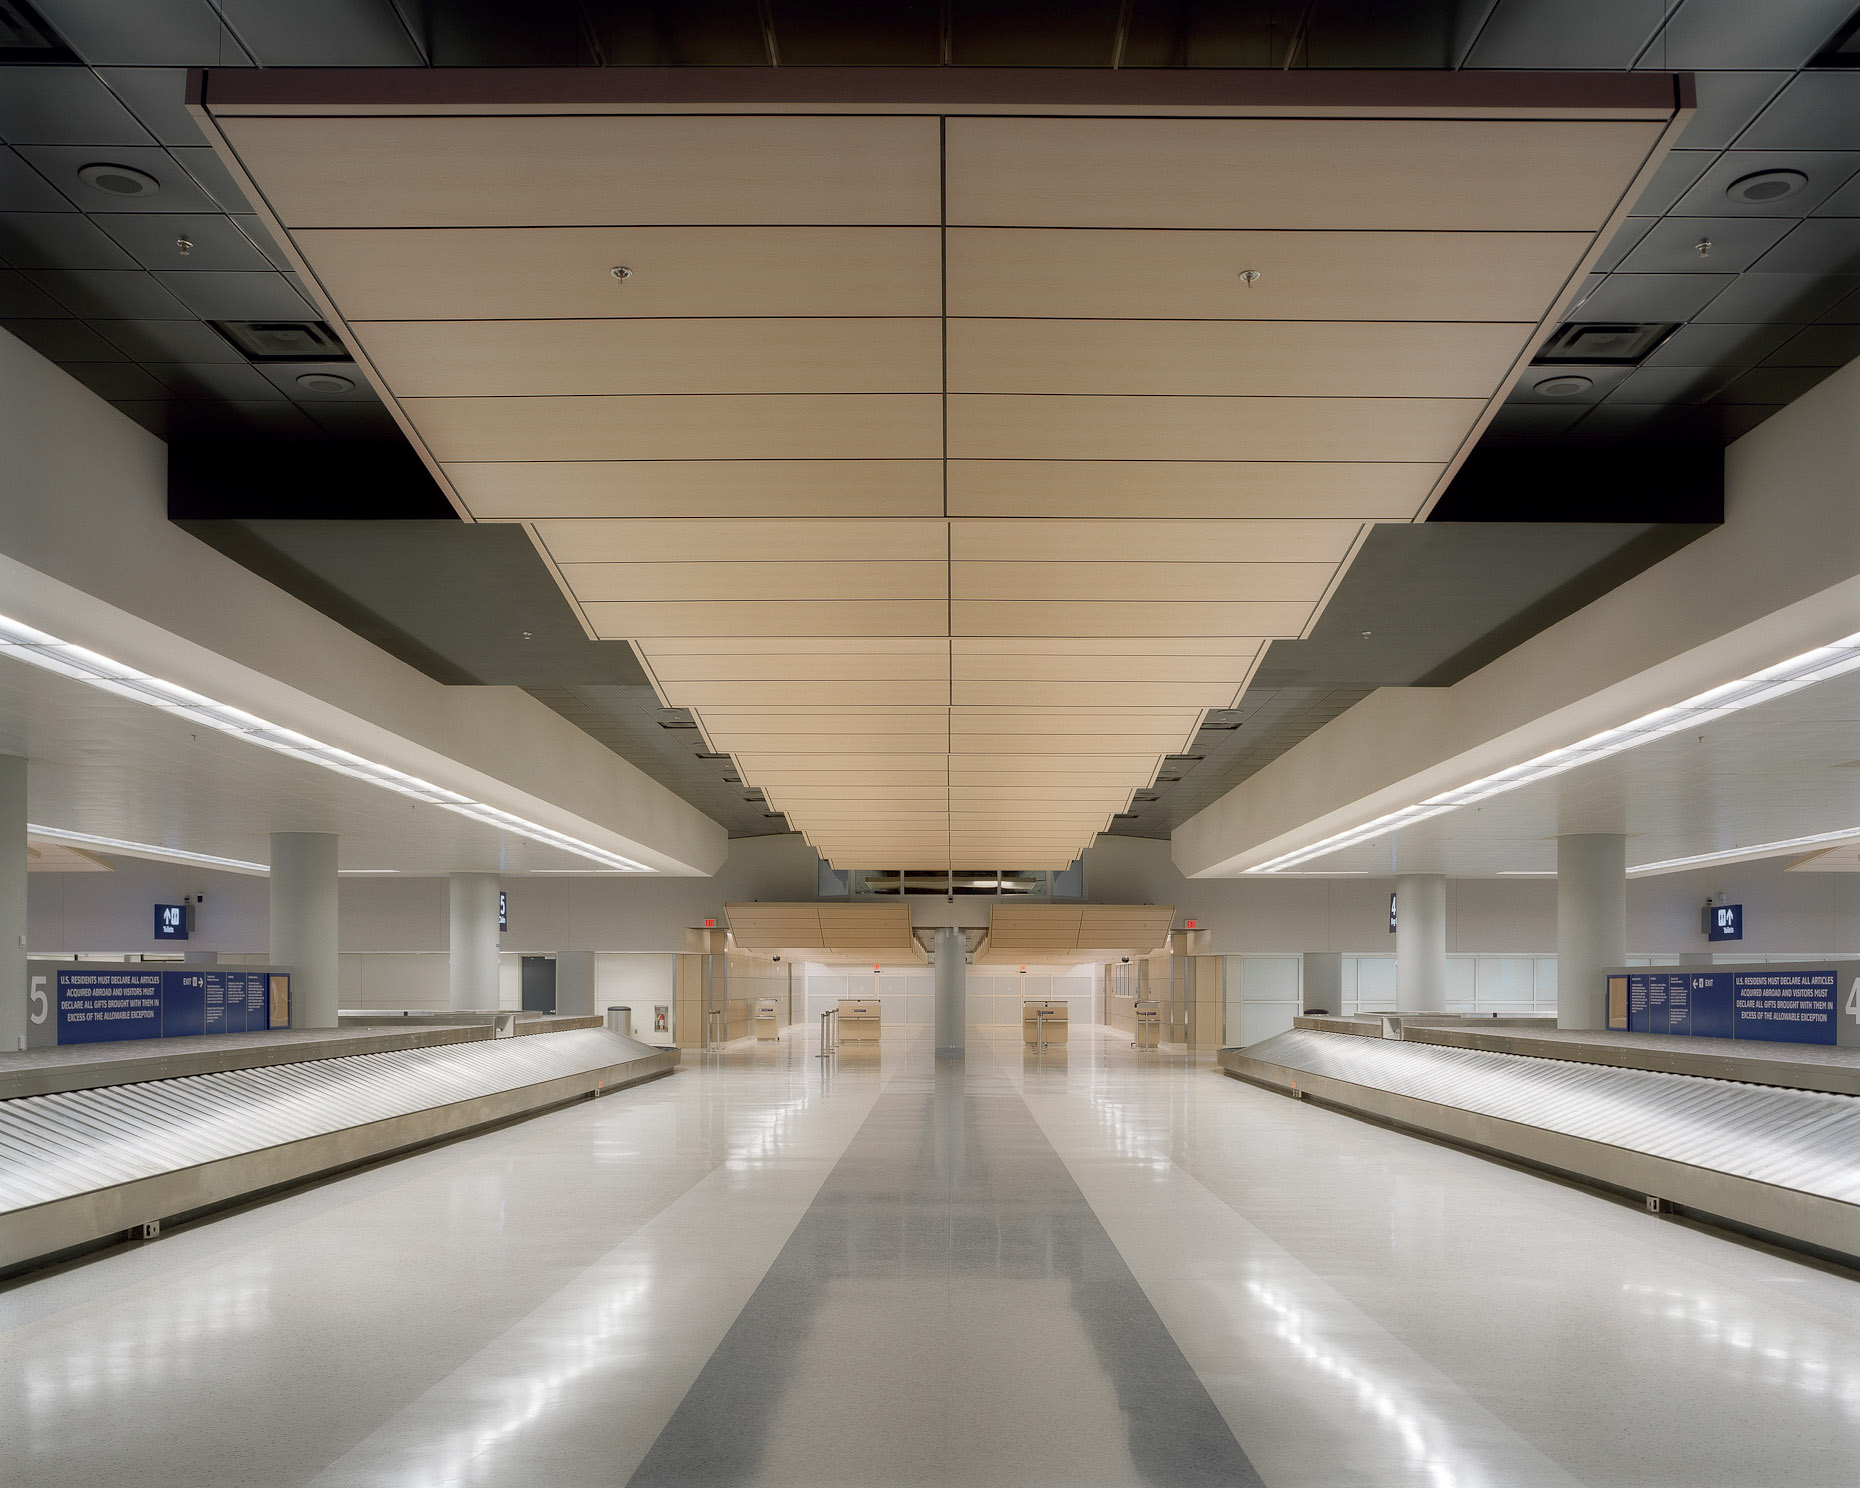 DFW International Airport by HNTB photographed by Brad Feinknopf based in COlumbus, Ohio